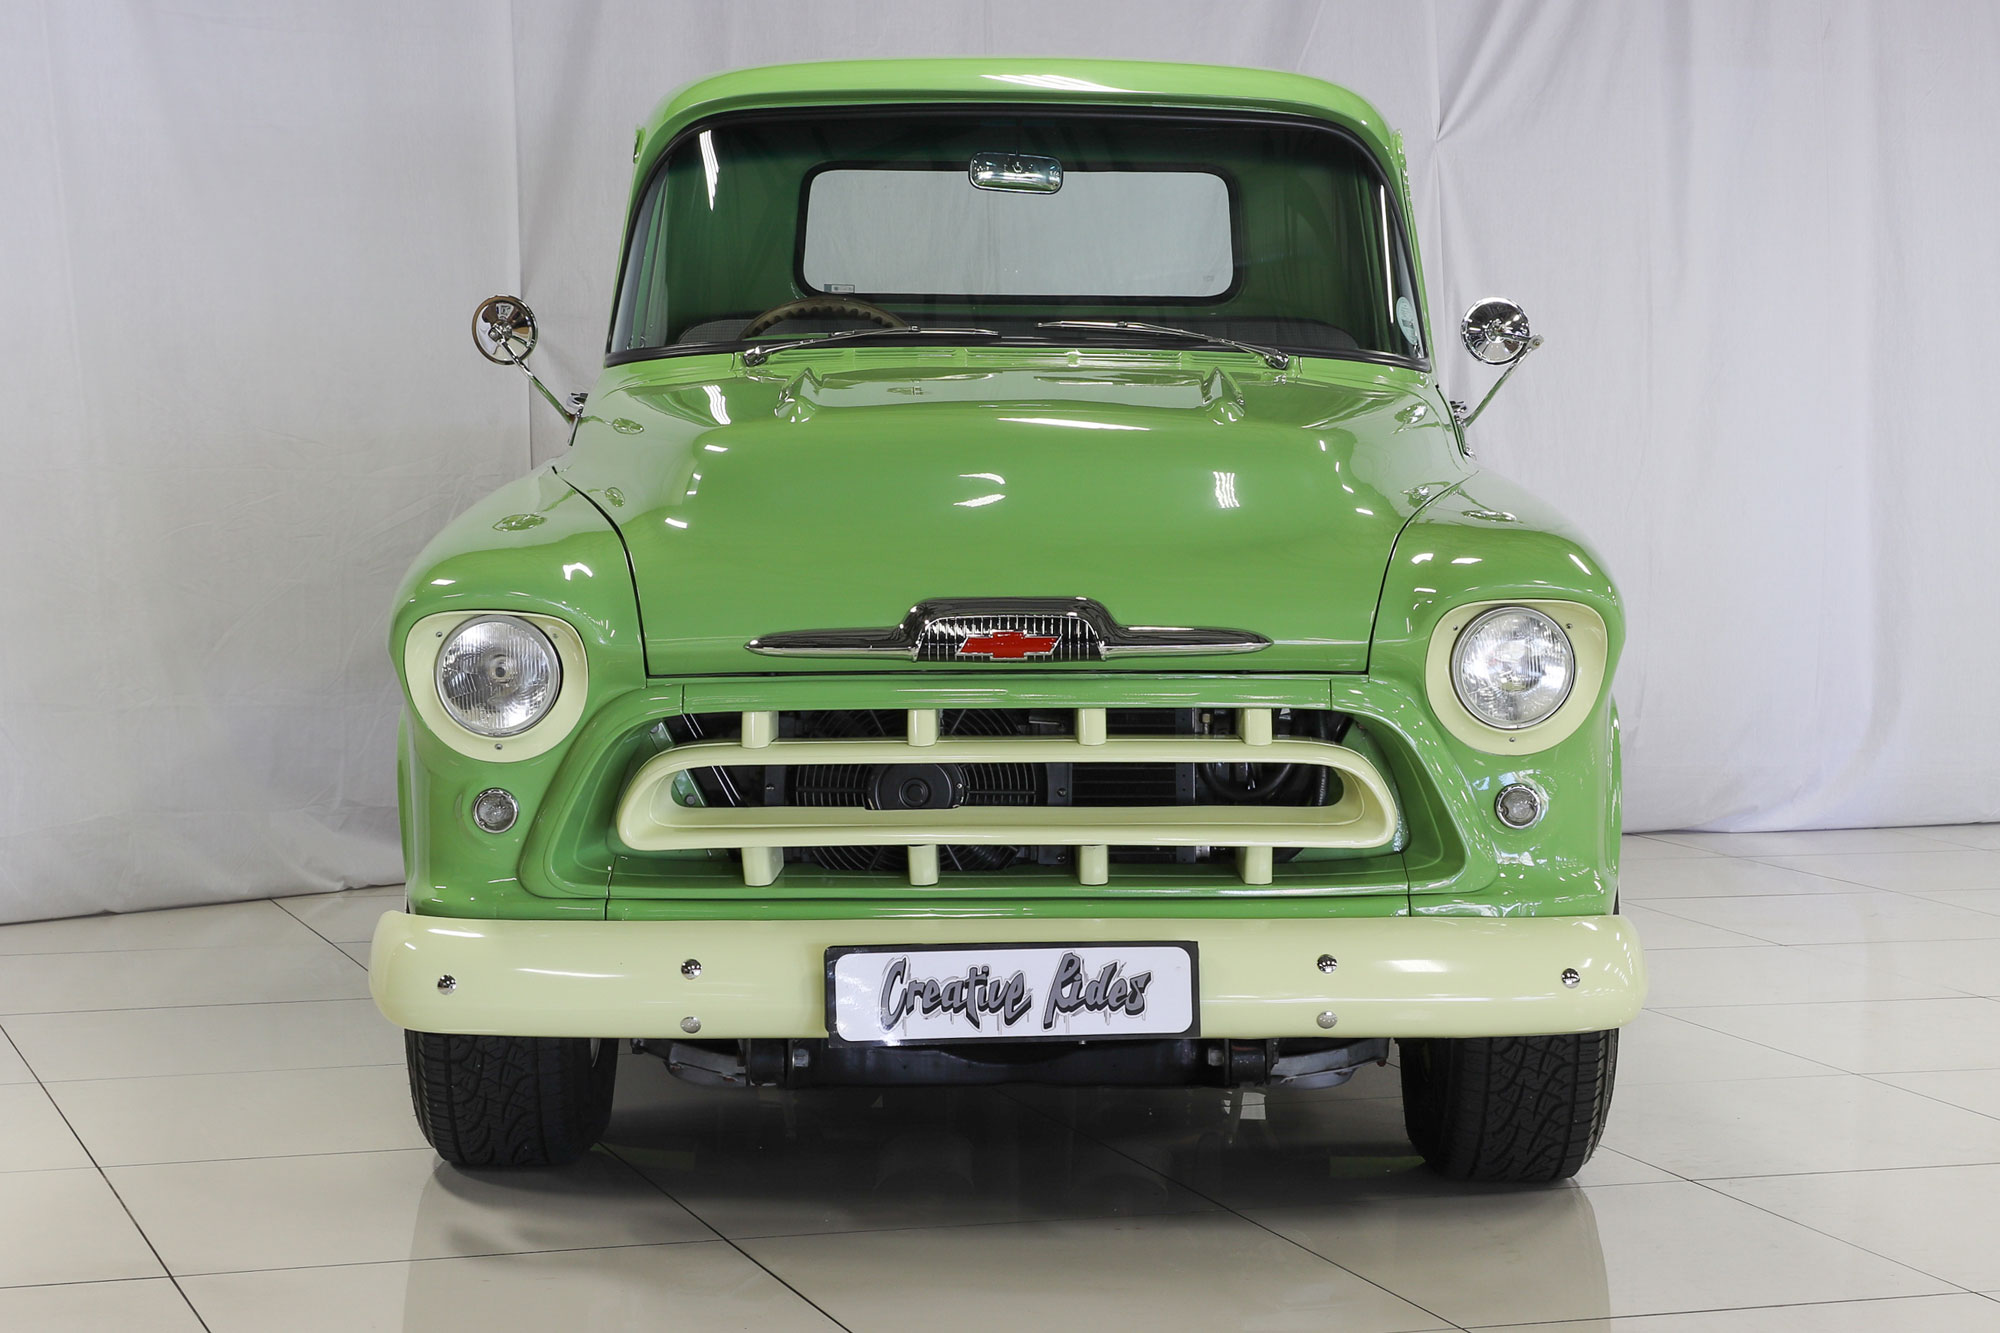 1957 Chevrolet 3100 Pickup Truck Creative Rides Chevy Sale Sold